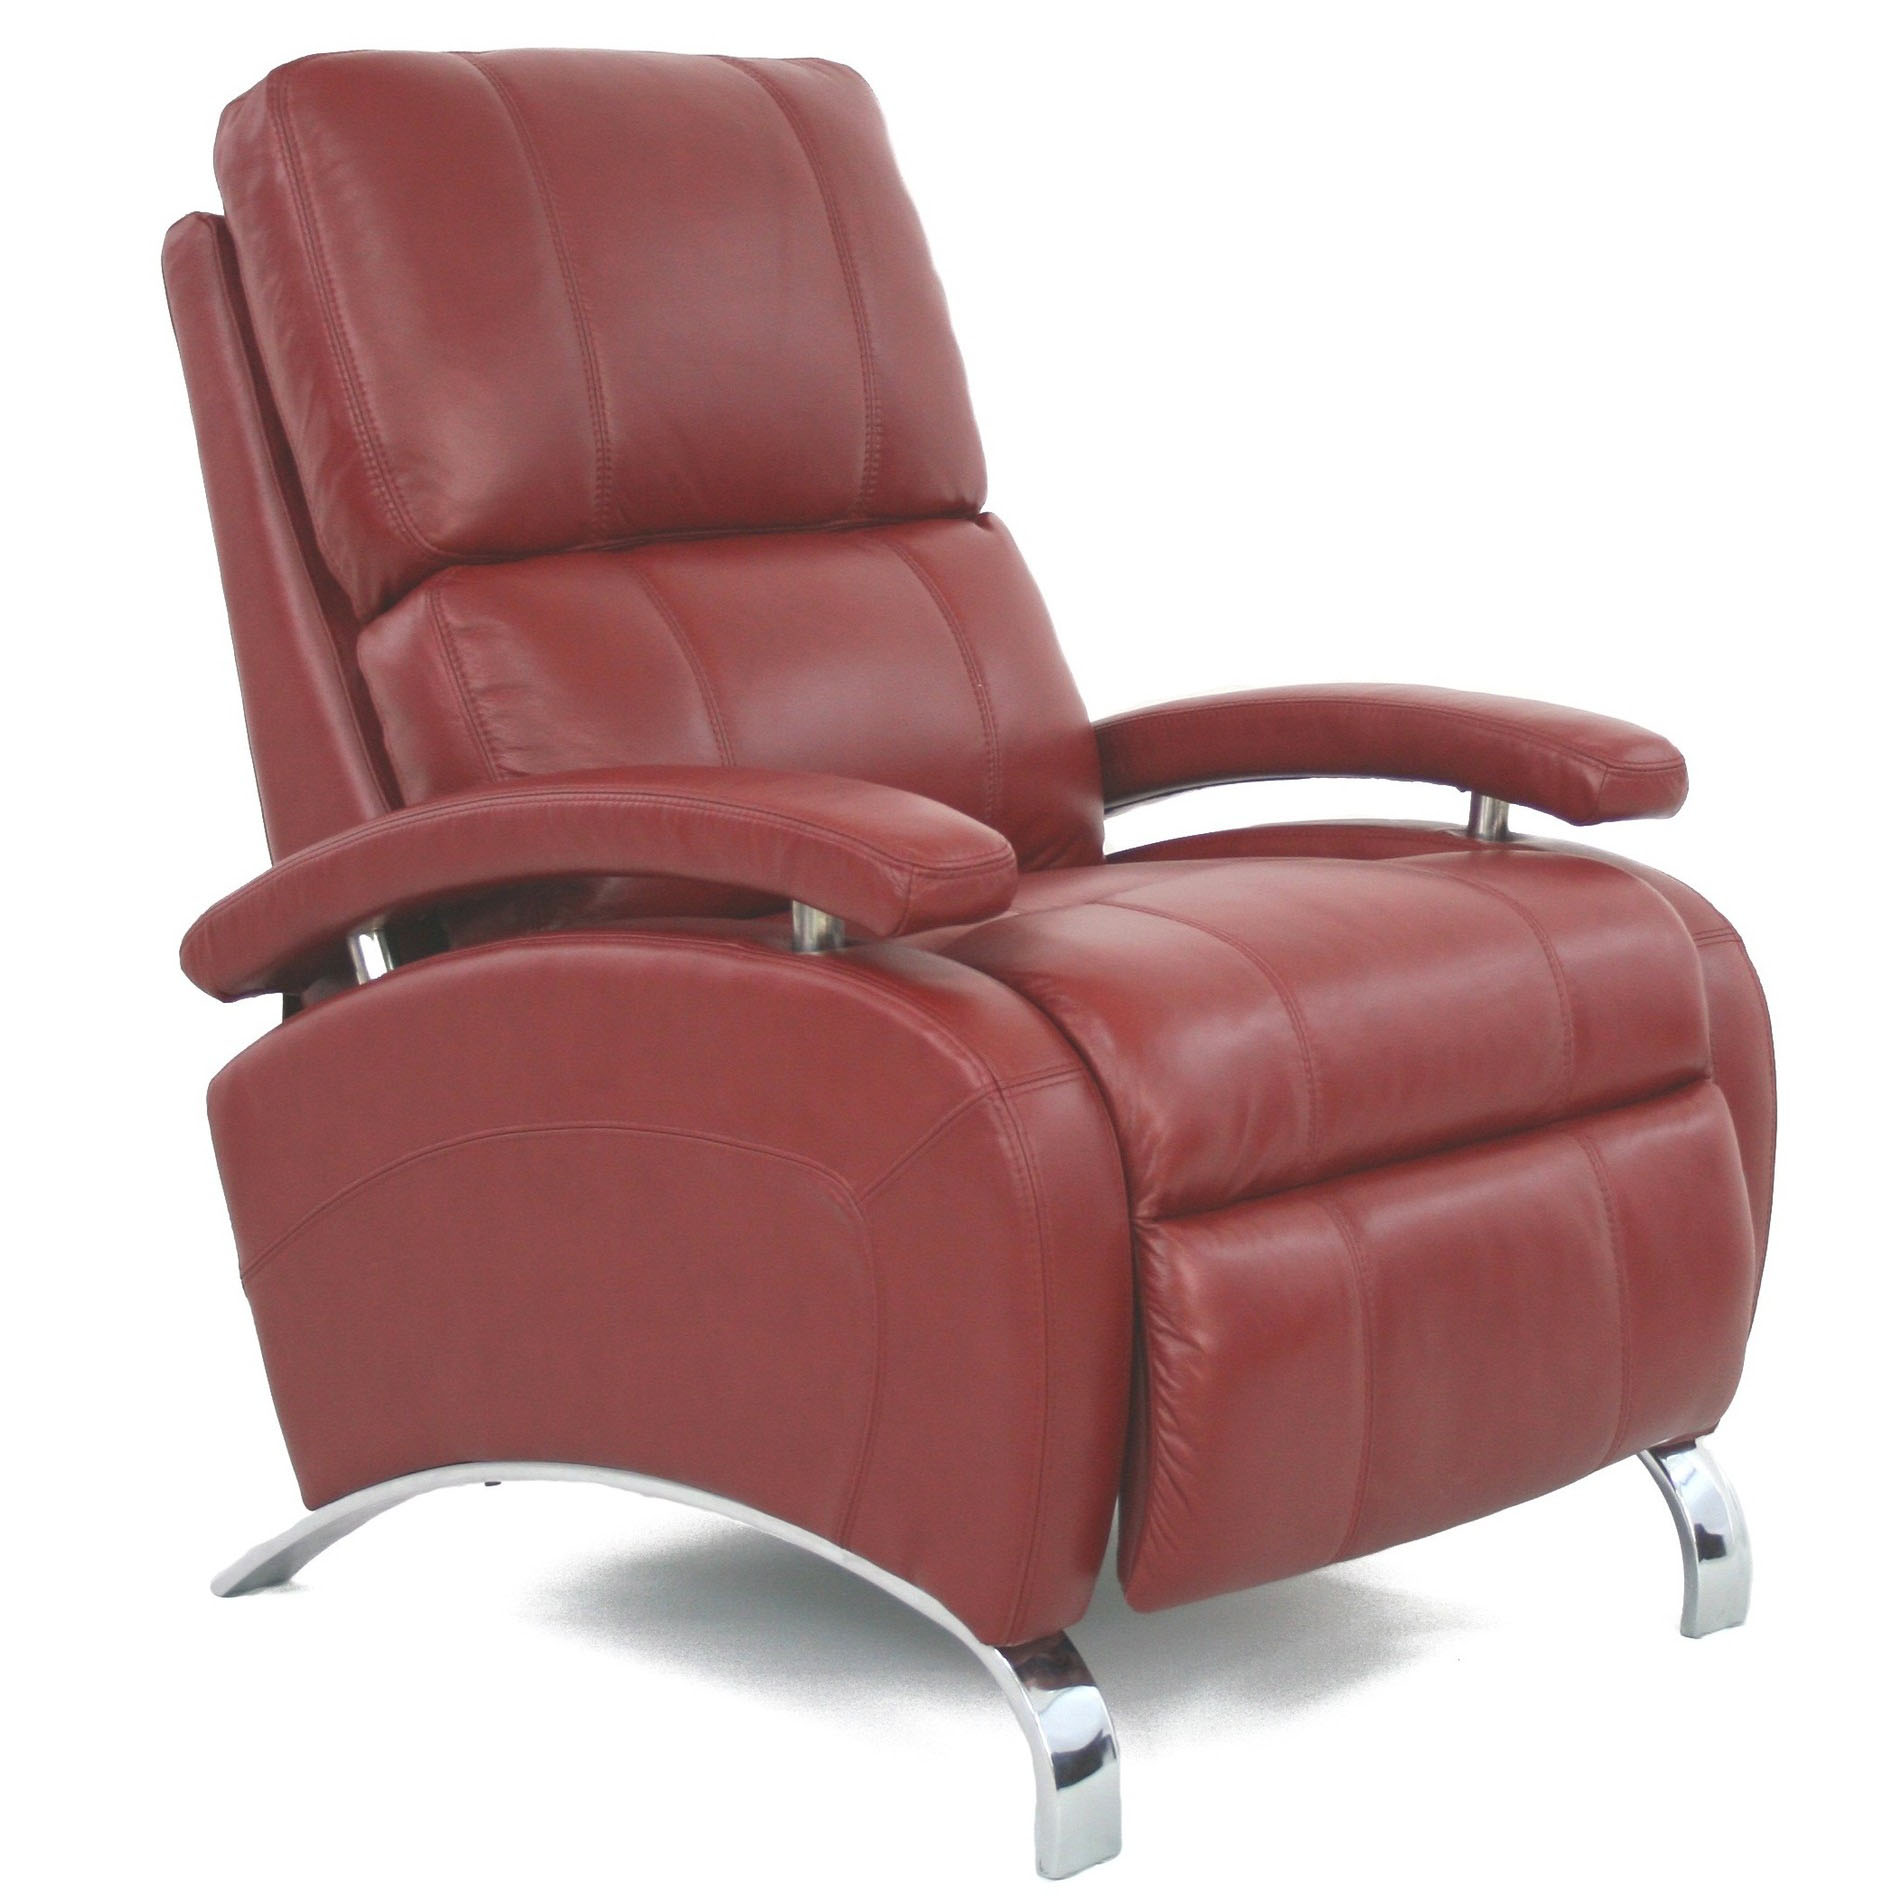 Barcalounger Oracle II Recliner Chair Red Leather